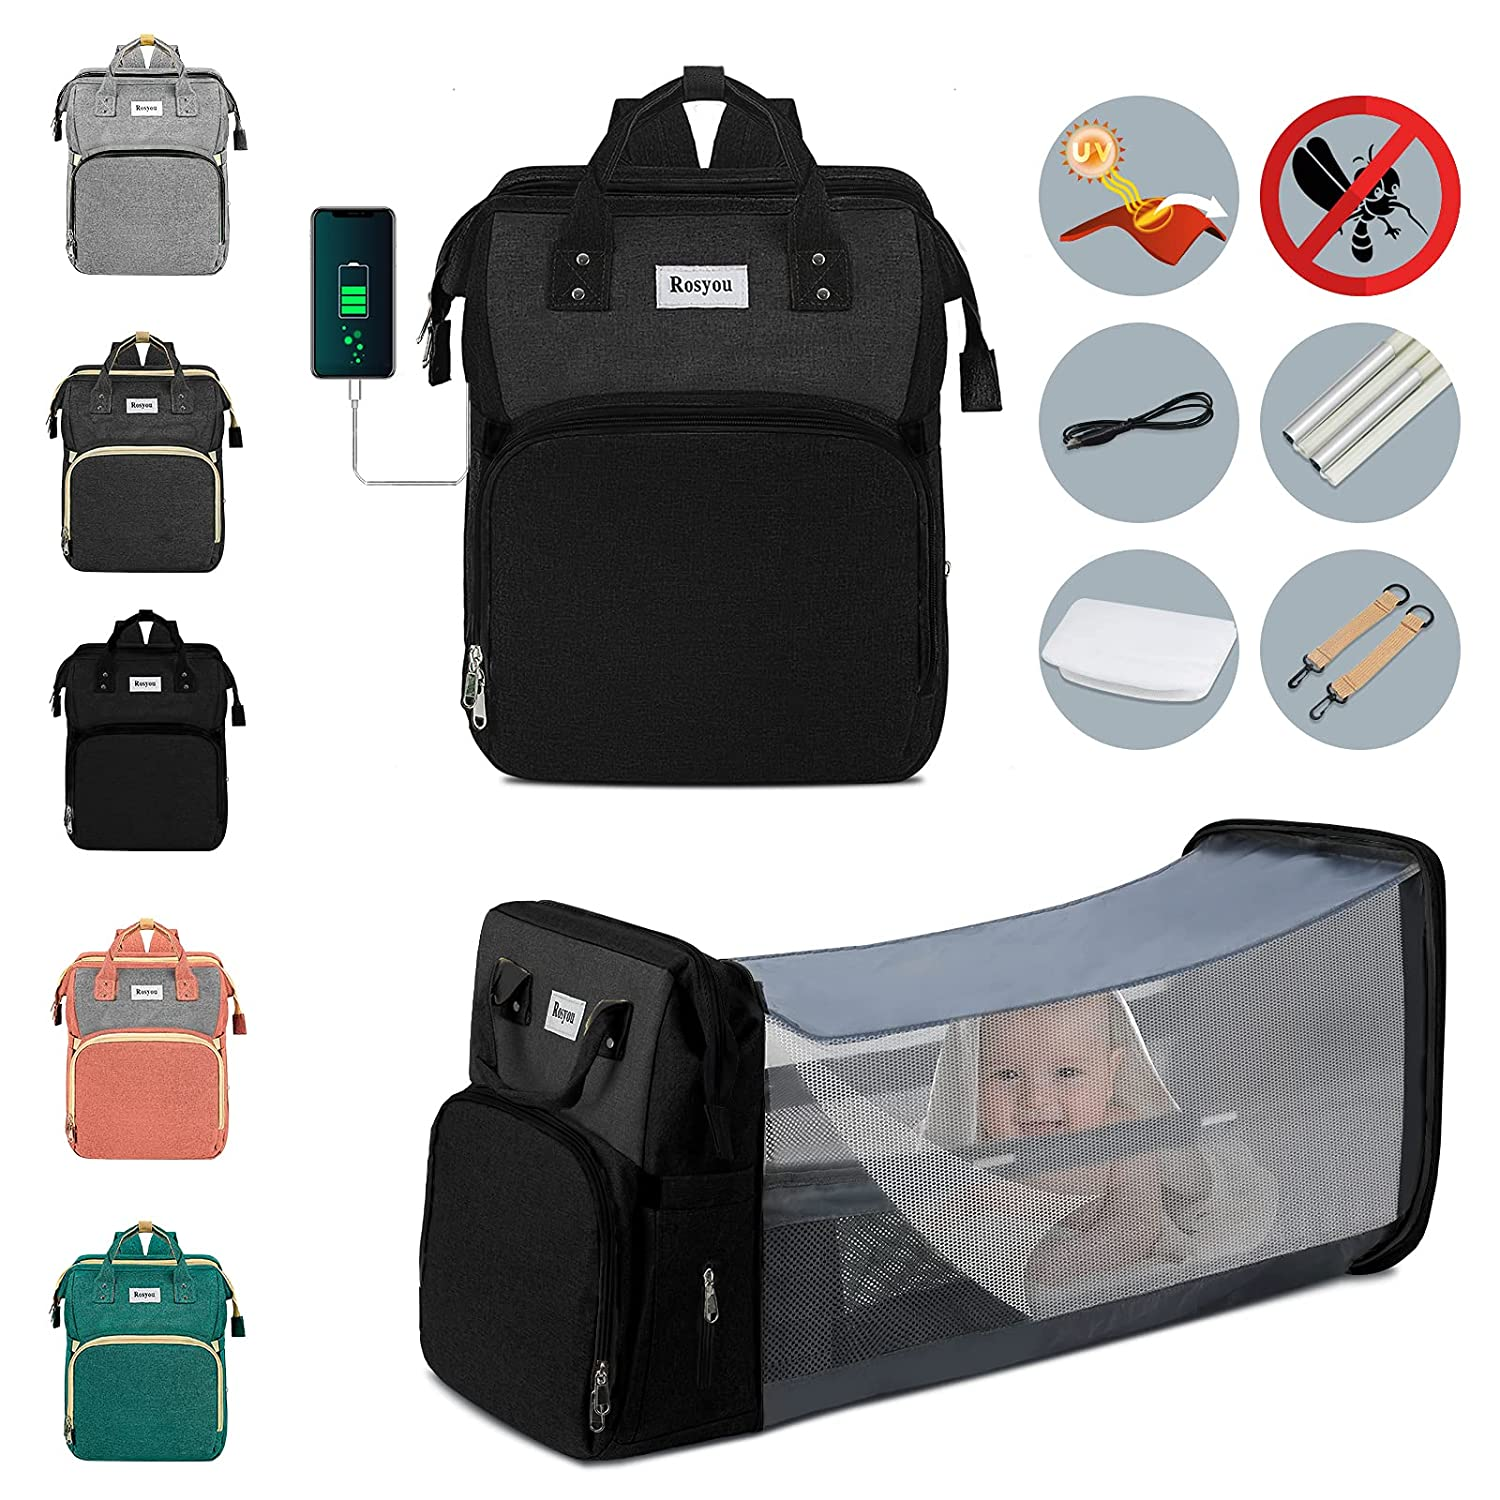 Diaper Bag Backpack, Multifunction Travel Baby Nappy Changing Bag for Dad Mom with Insulated Pockets, Mosquito Net, Changing Pad, Storller Straps, Maternity Baby Bag for Boys Girls (Black Grey)